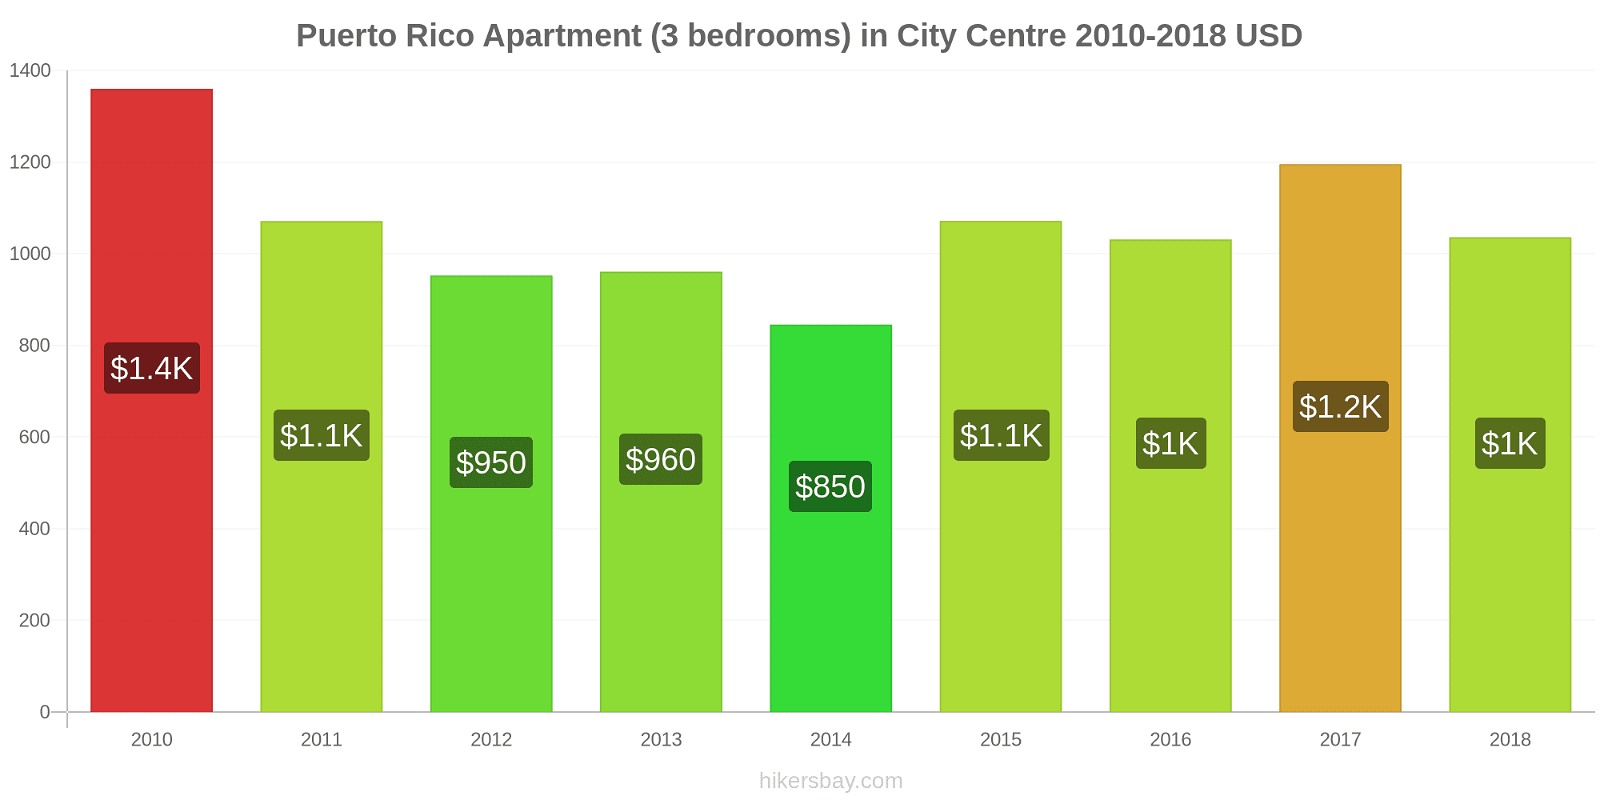 Puerto Rico price changes Apartment (3 bedrooms) in City Centre hikersbay.com